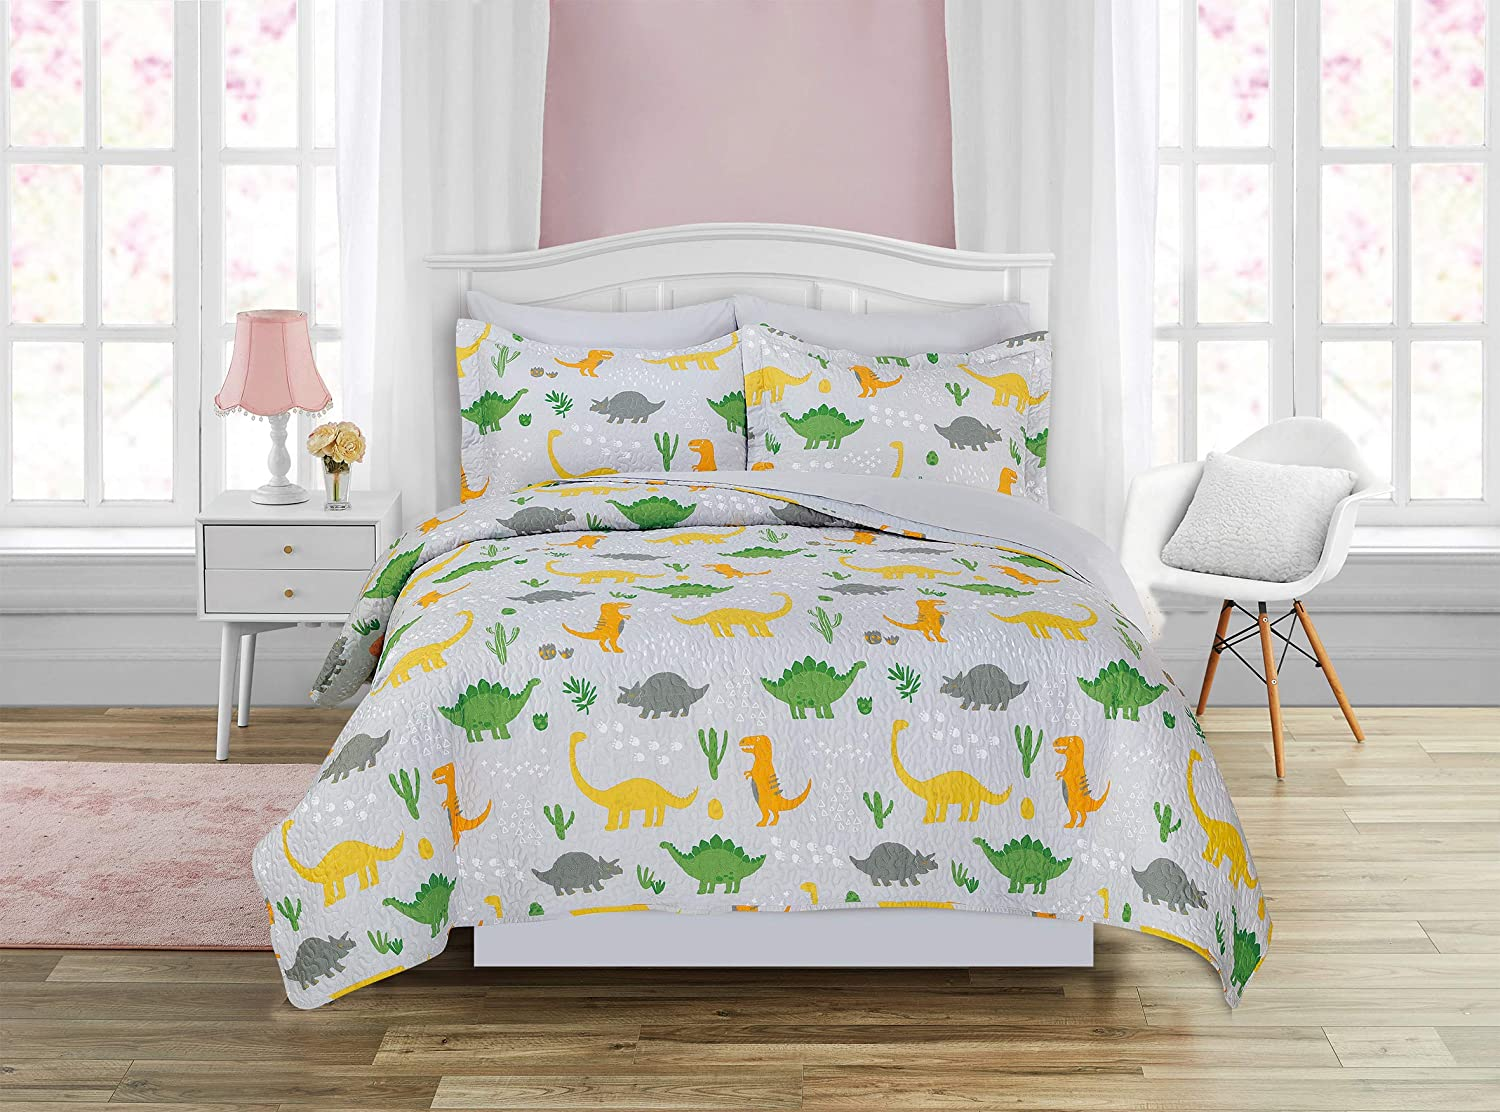 7pc Queen Seattle Mall Size Quilt Bedspread Set Directly managed store Green Orange Kids Ye Dinosaur